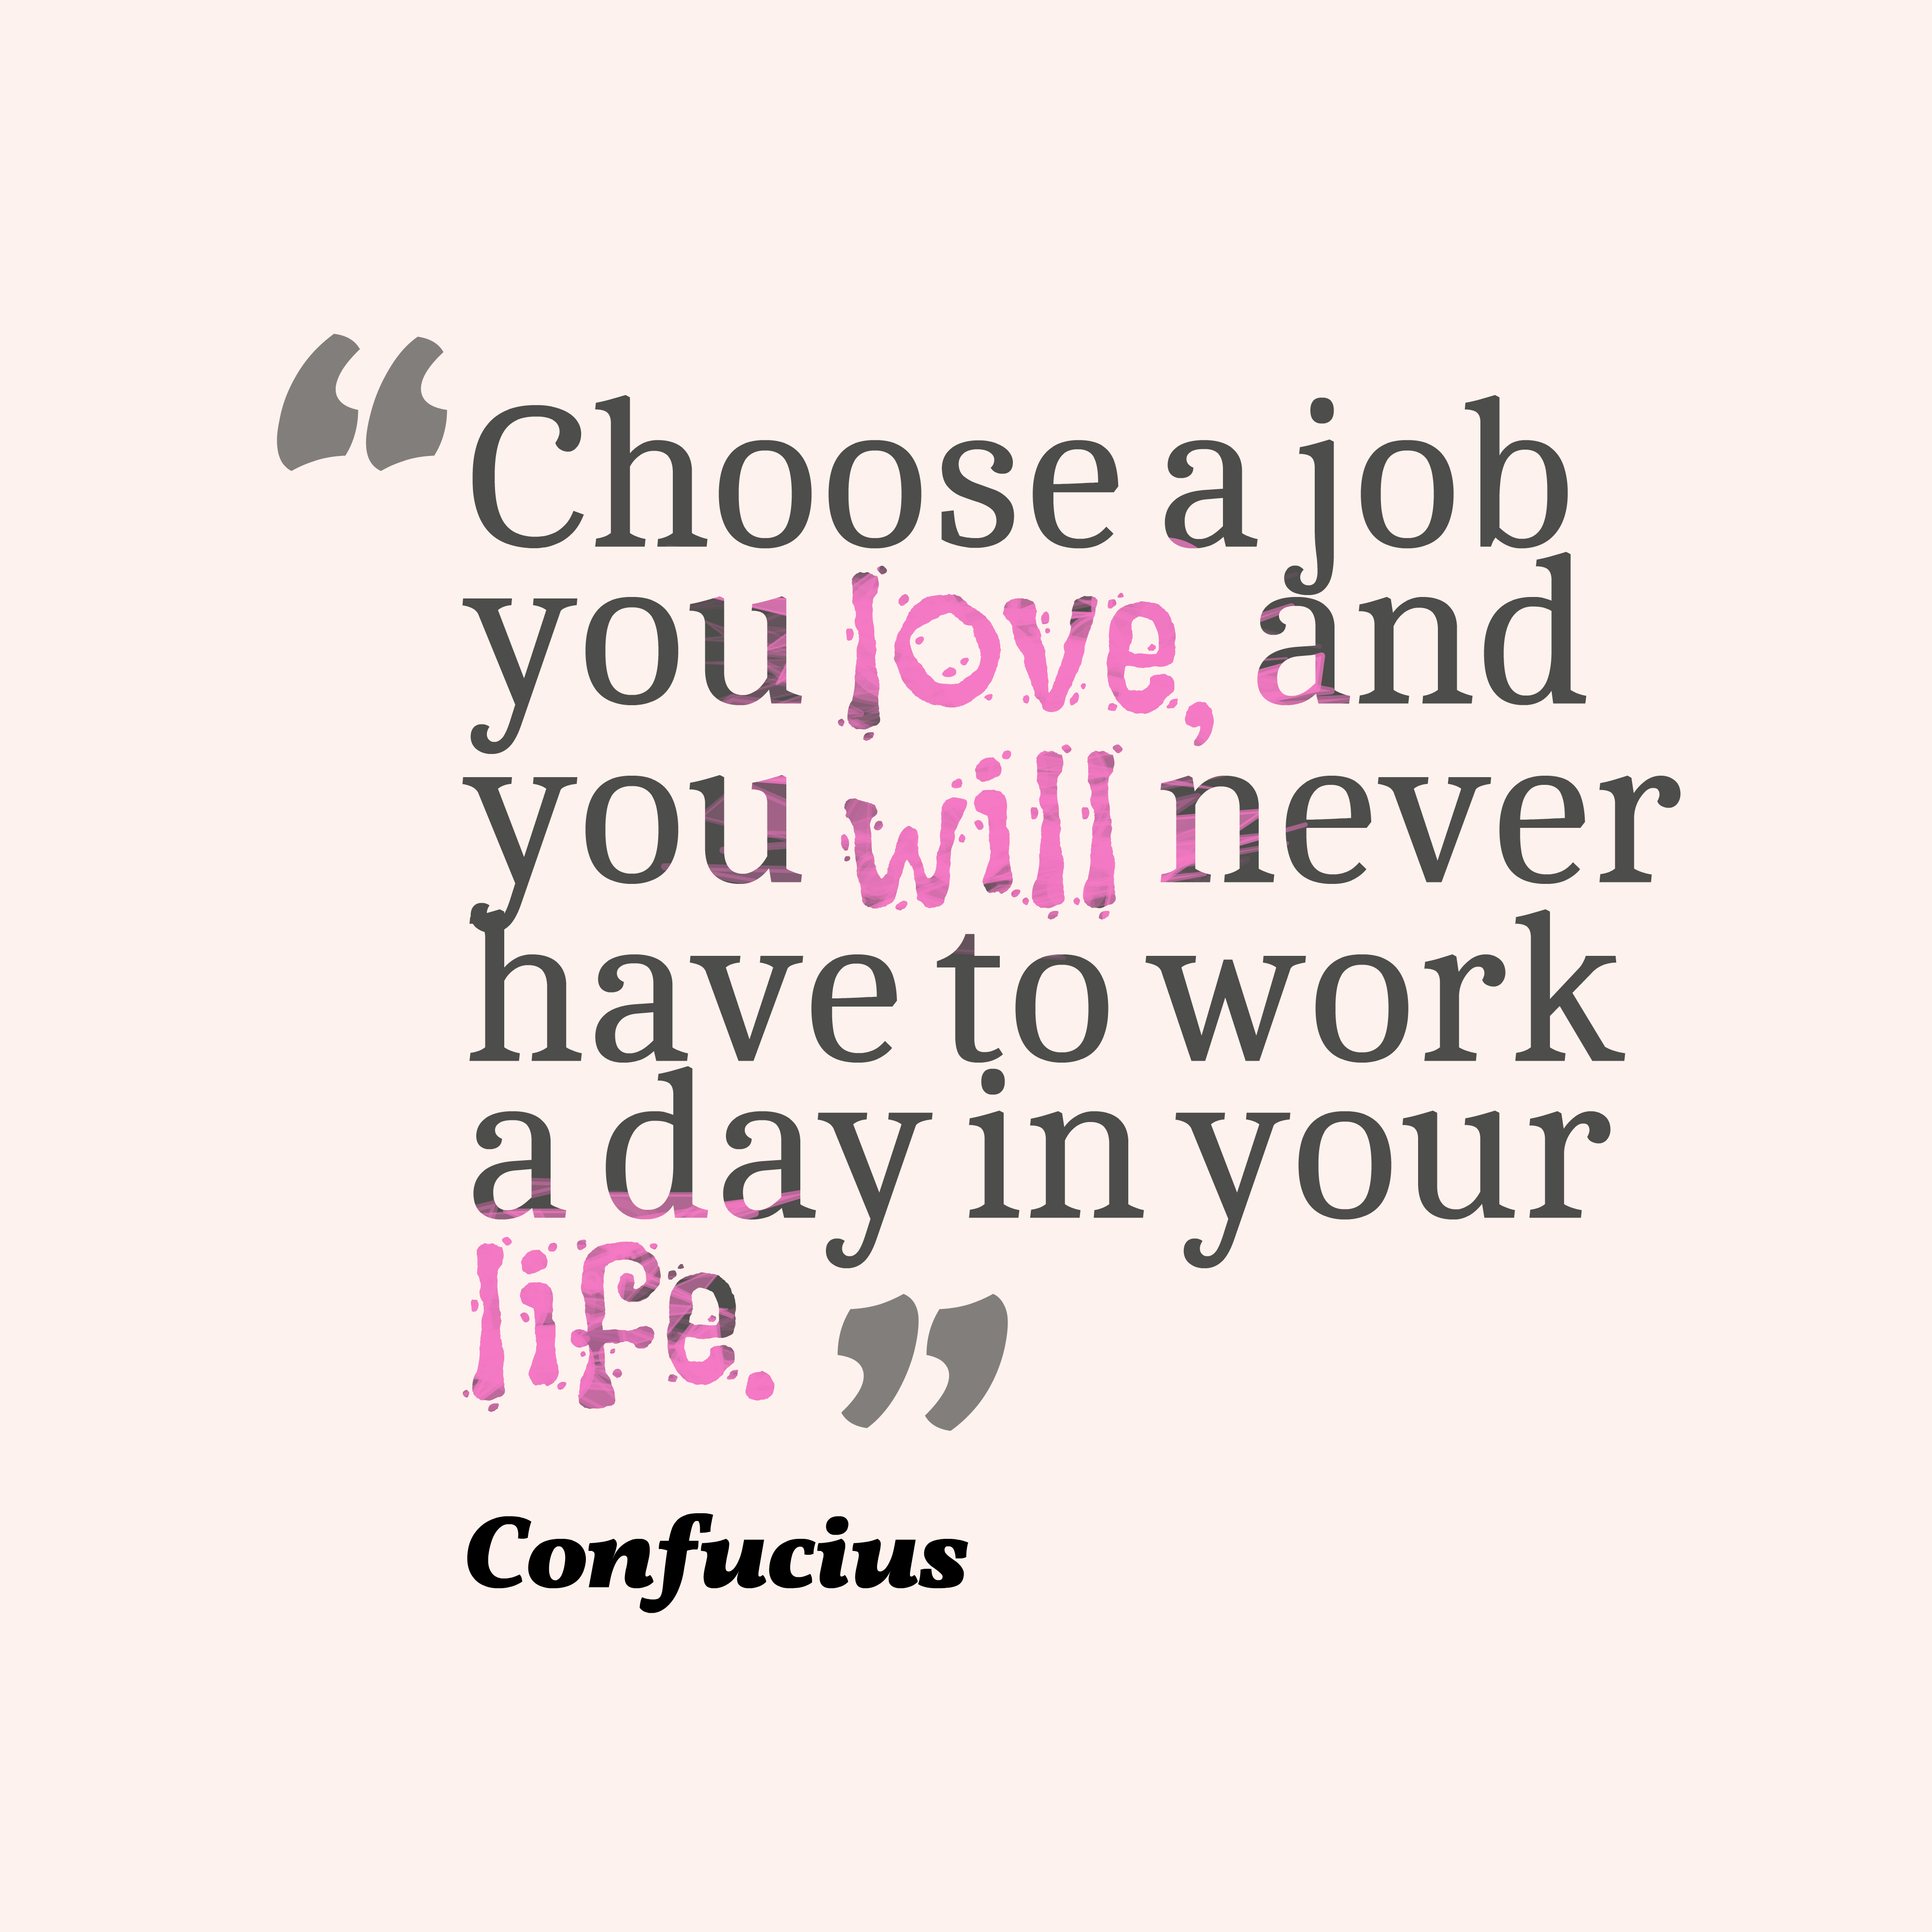 confucius quote about love and job